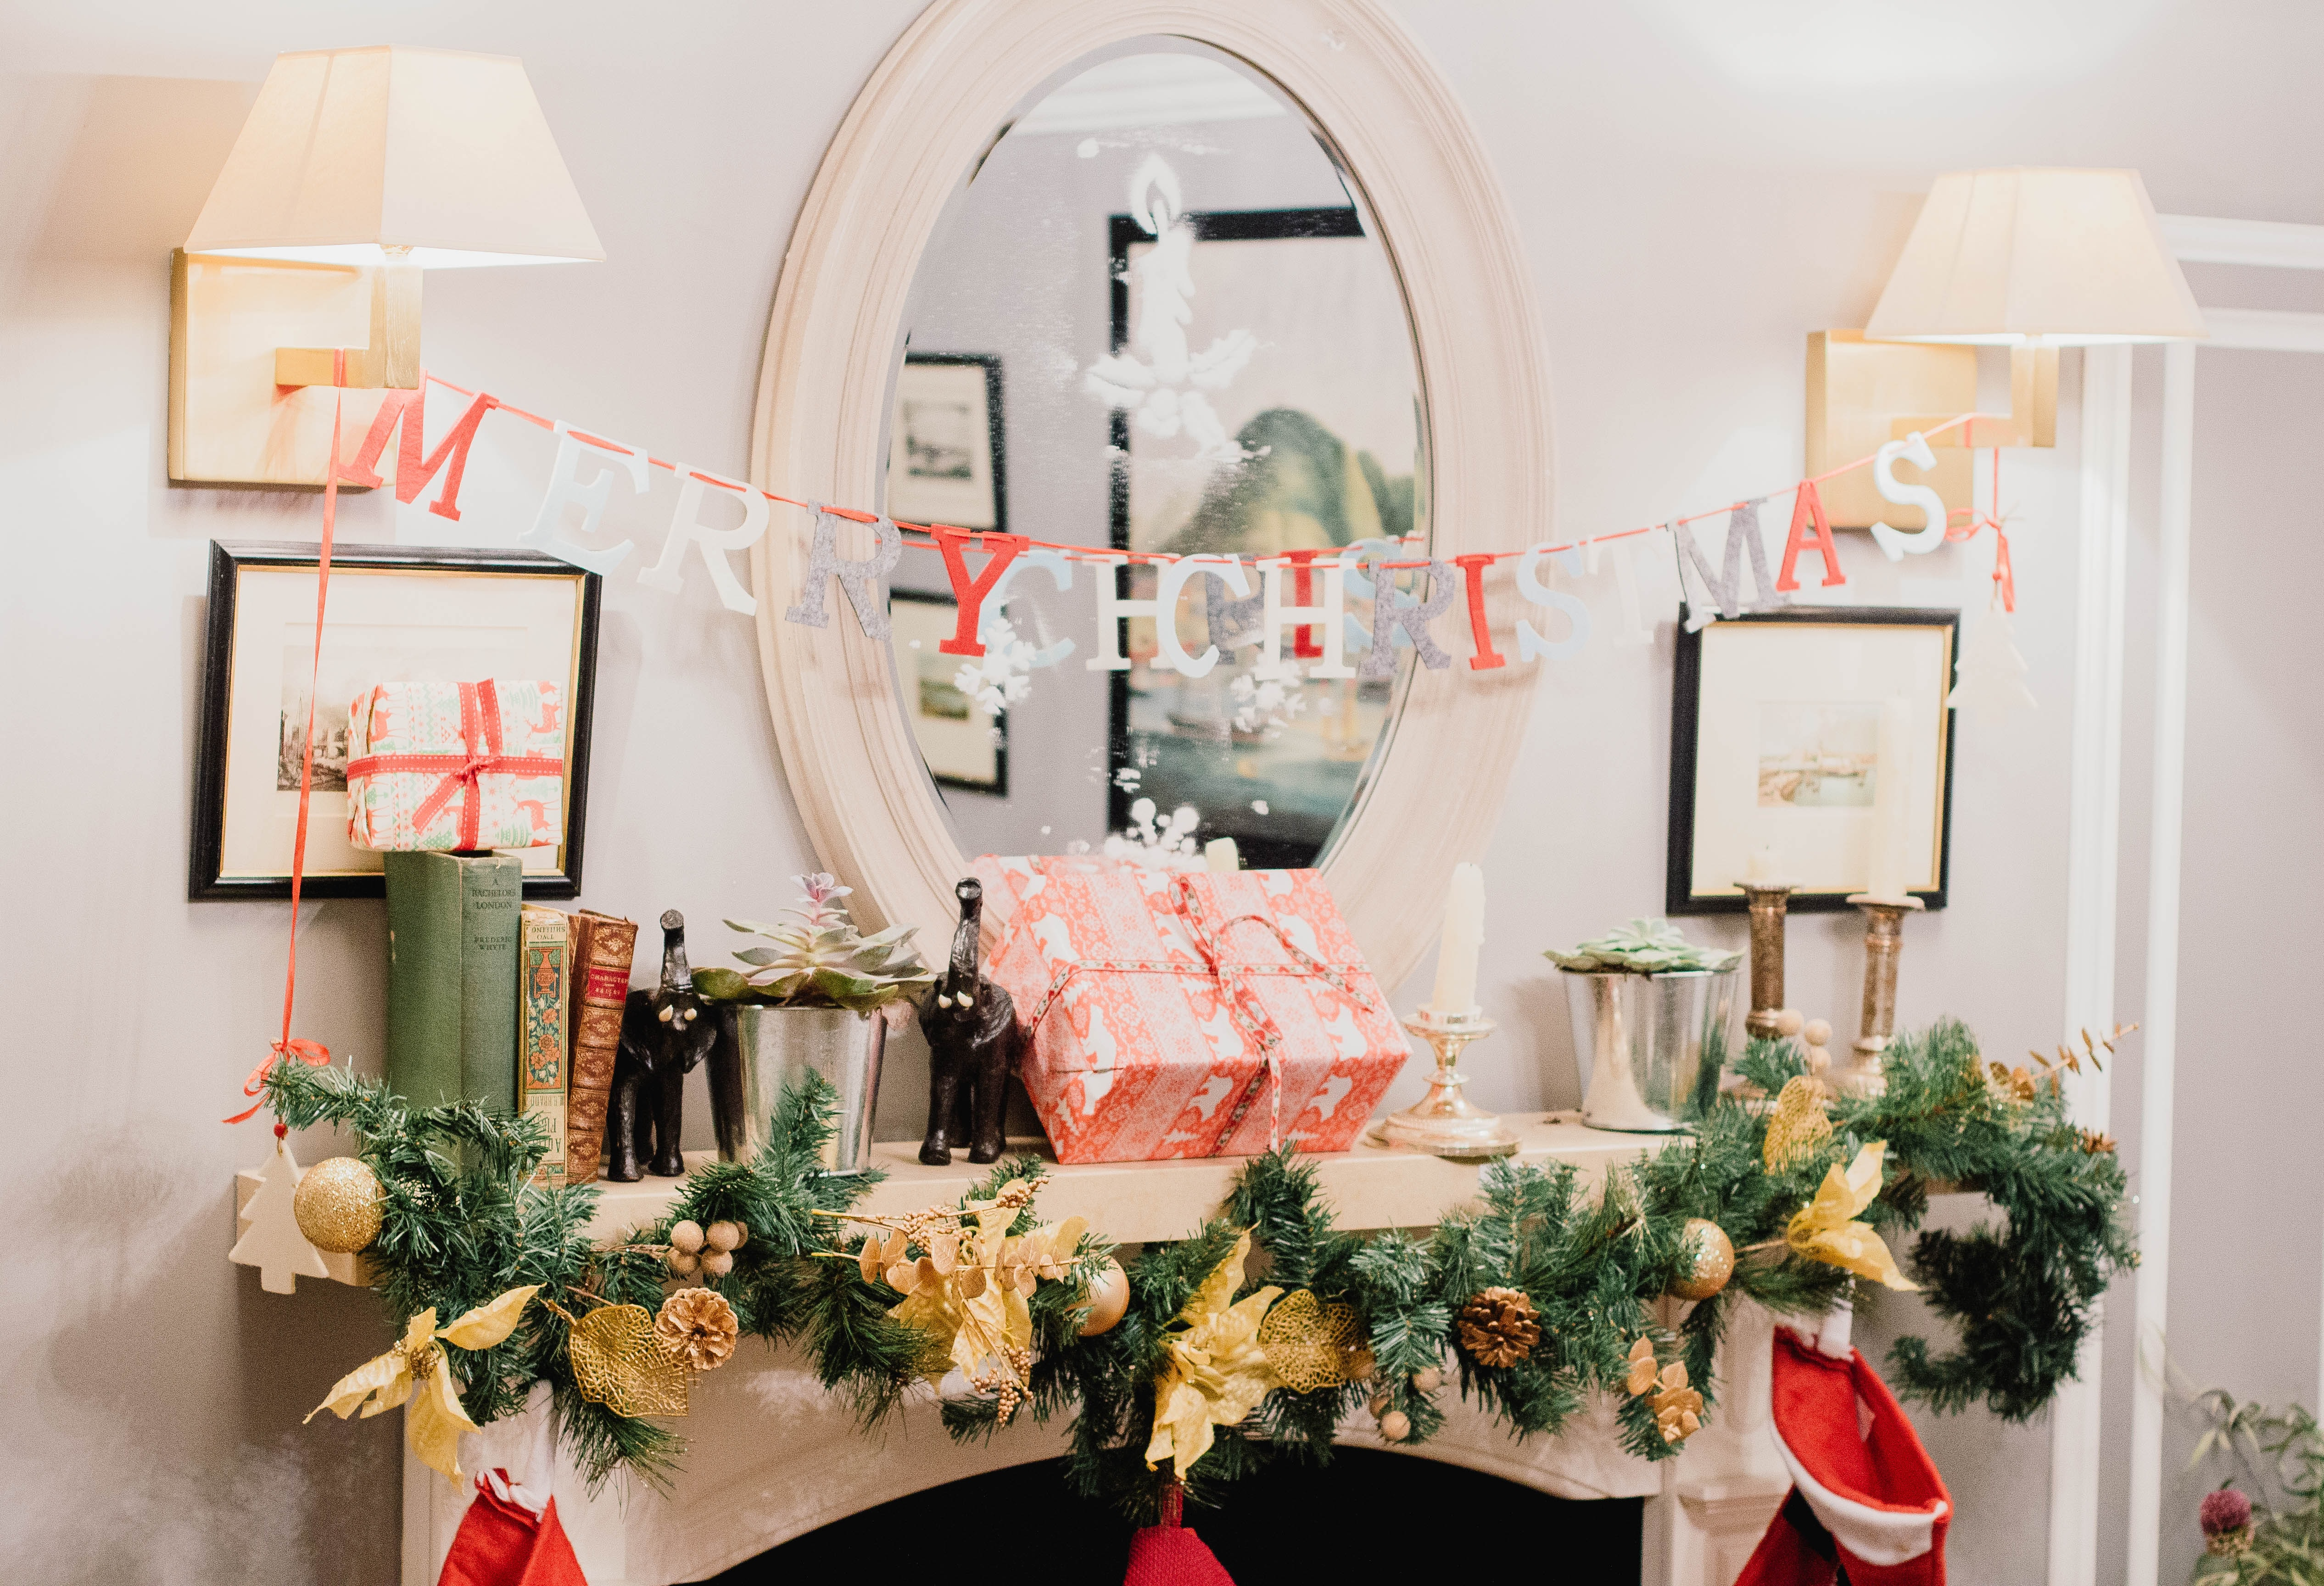 Merry Christmas letter banner hanging on sconces in white painted room